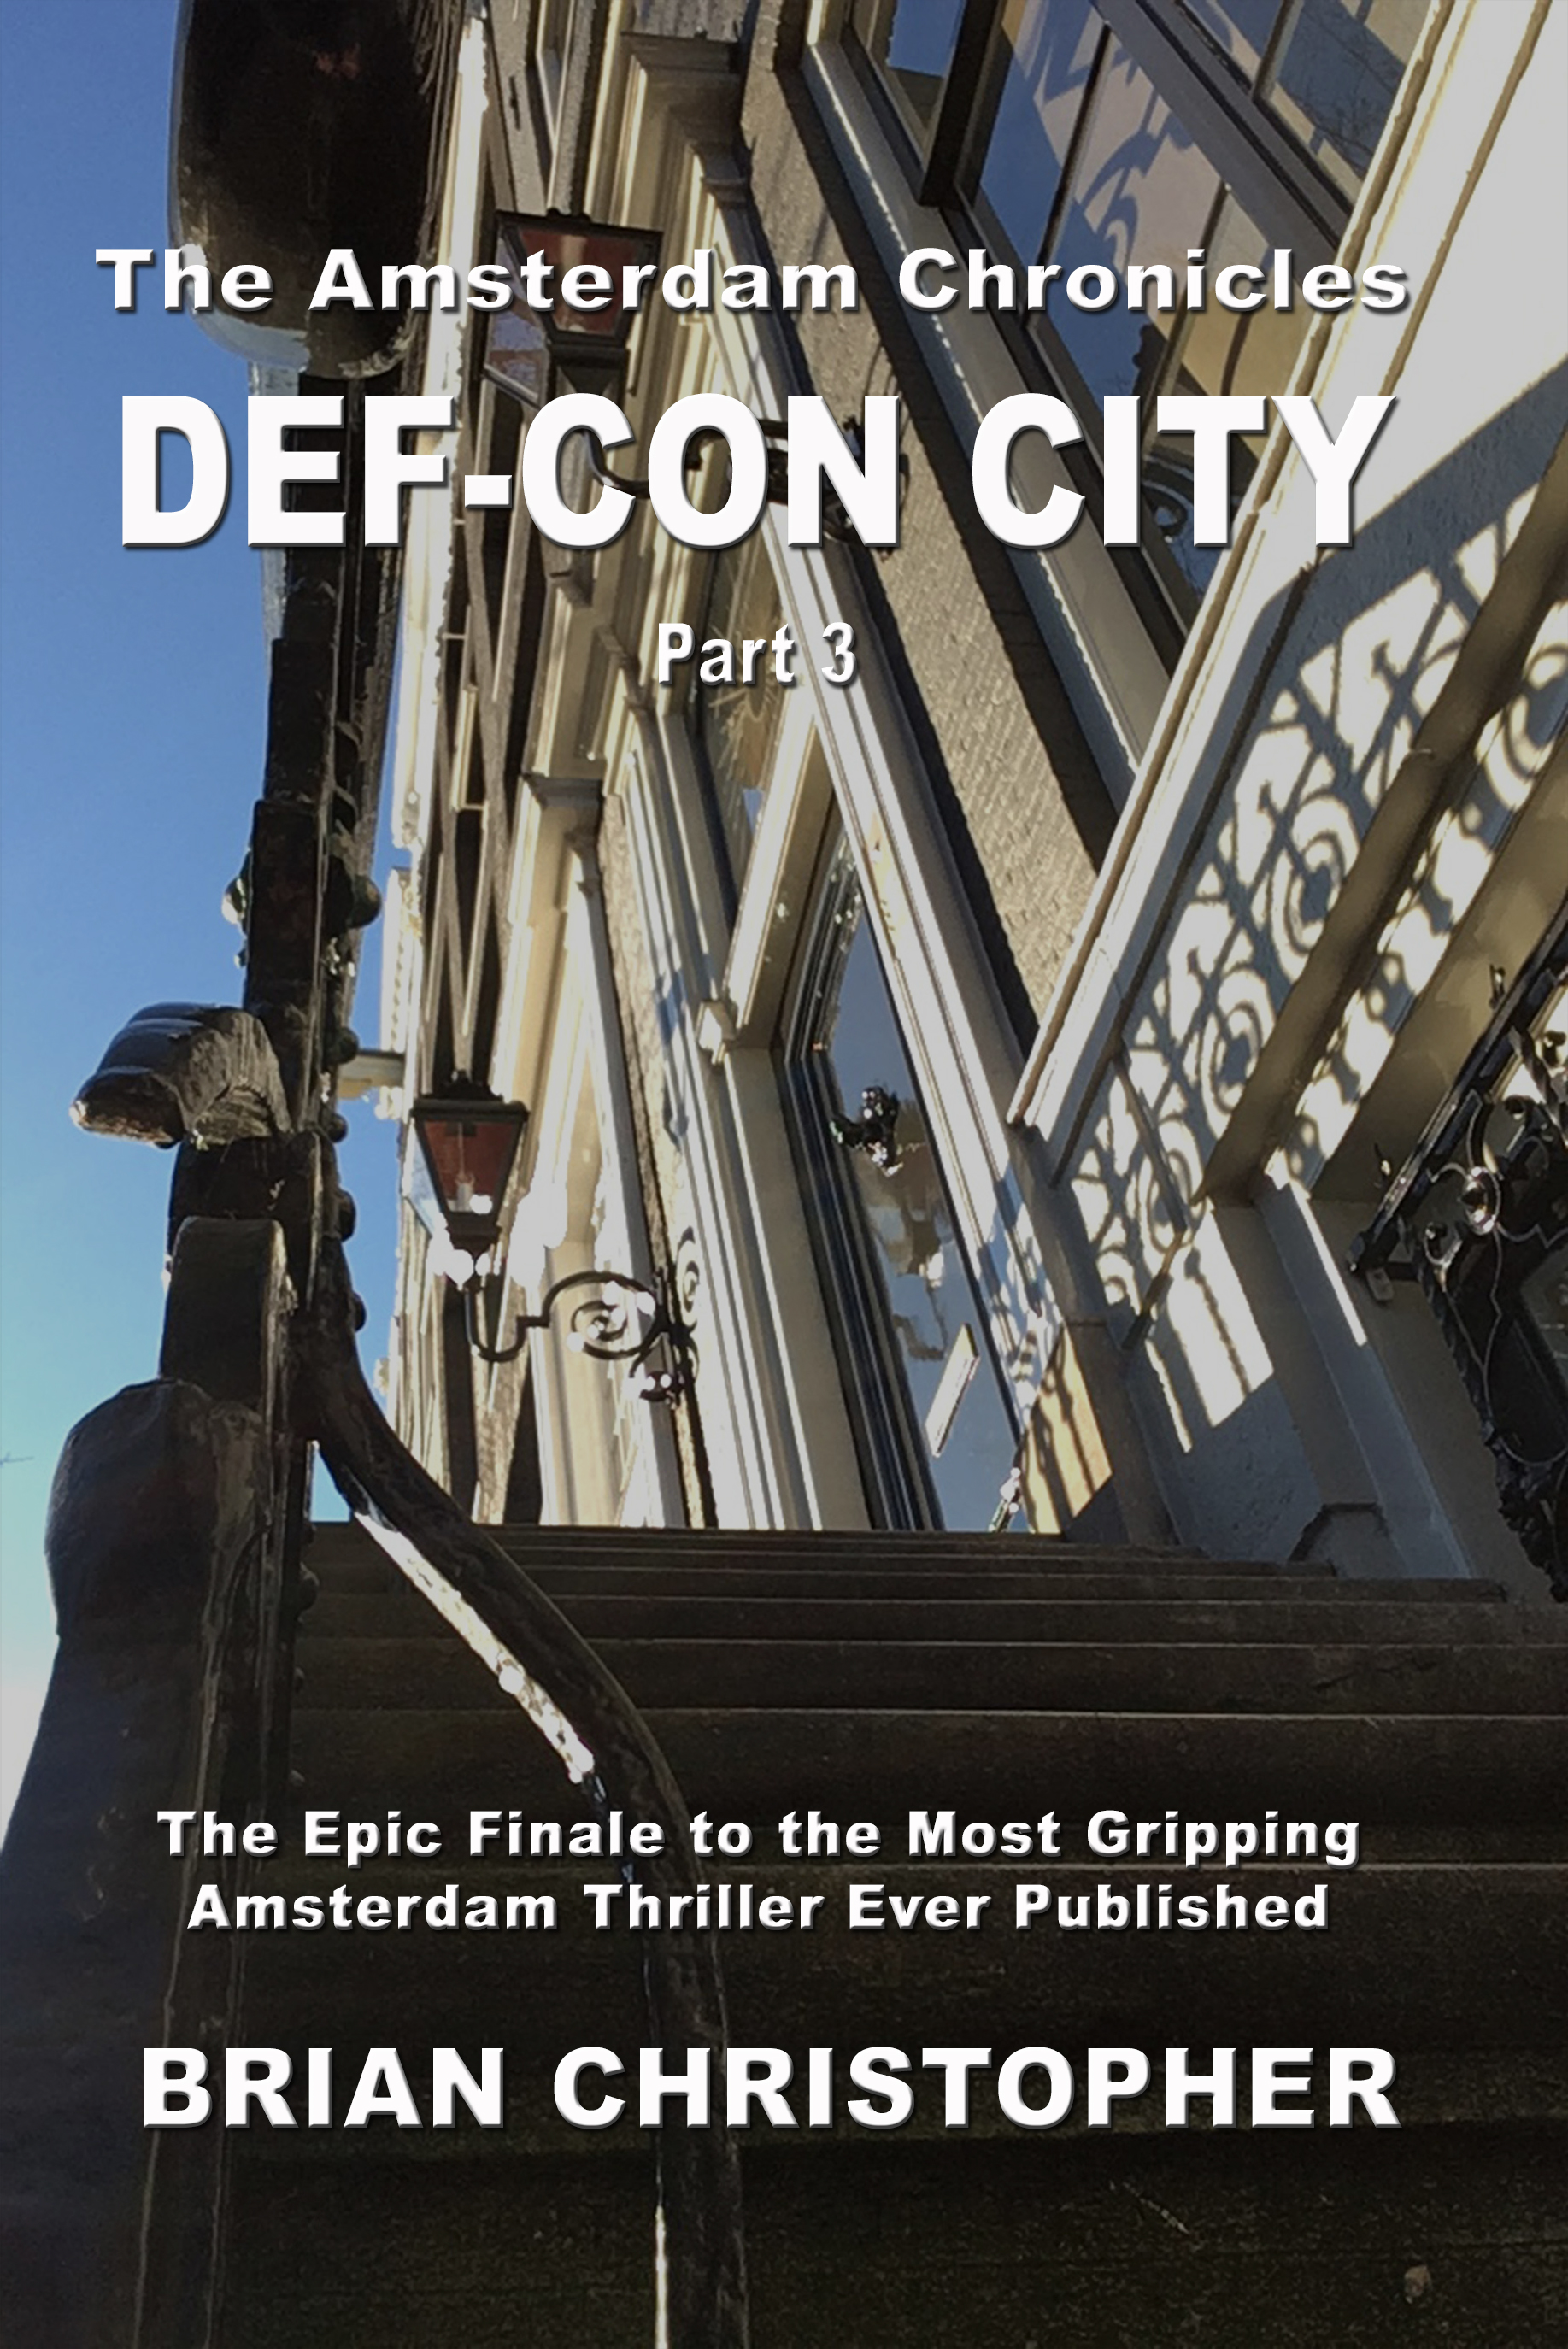 How Long Does Def Last >> The Amsterdam Chronicles Def Con City Part 3 An Ebook By Brian Christopher